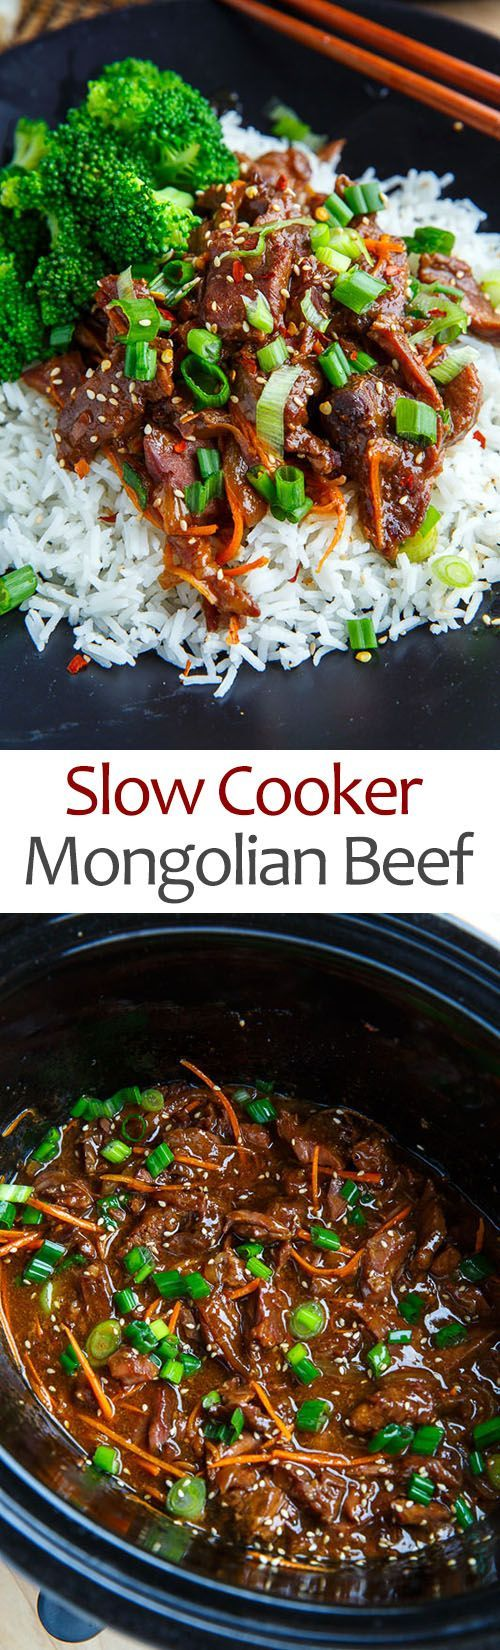 Slow cooker mongolian beef chinese food recipes pinterest slow cooker mongolian beef chinese food recipes pinterest mongolian beef chinese food recipes and cooker forumfinder Choice Image